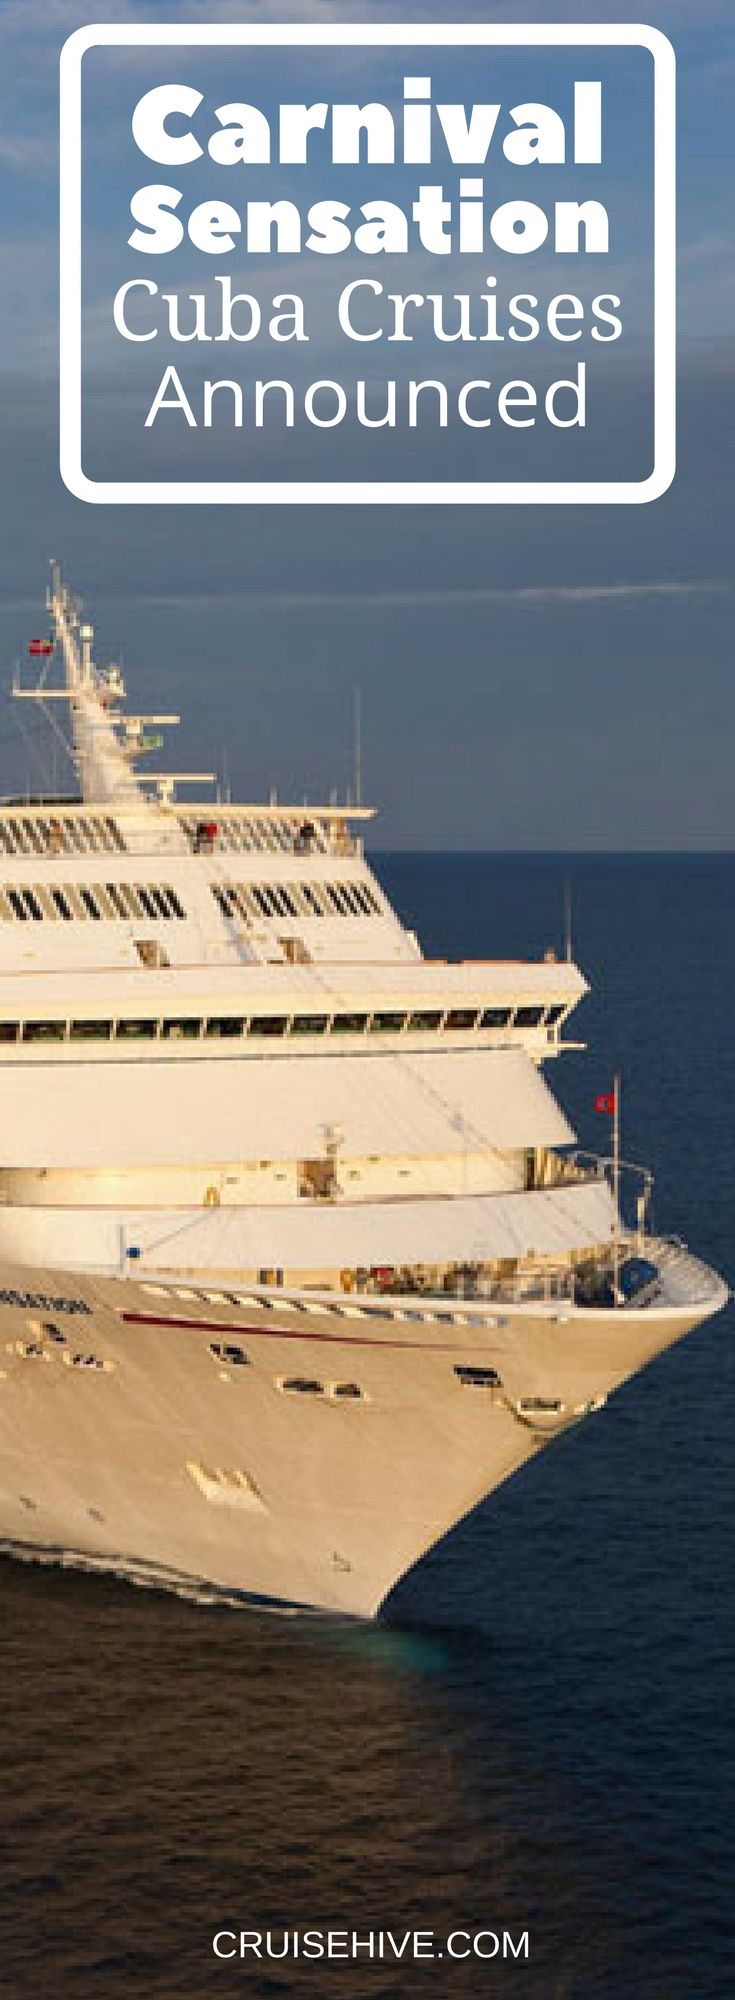 Carnival Sensation to offer cruises to Havana, Cuba from Miami, Florida starting in 2019. The ship will sail 5-day itineraries including other ports of calls in the Bahamas and Caribbean.